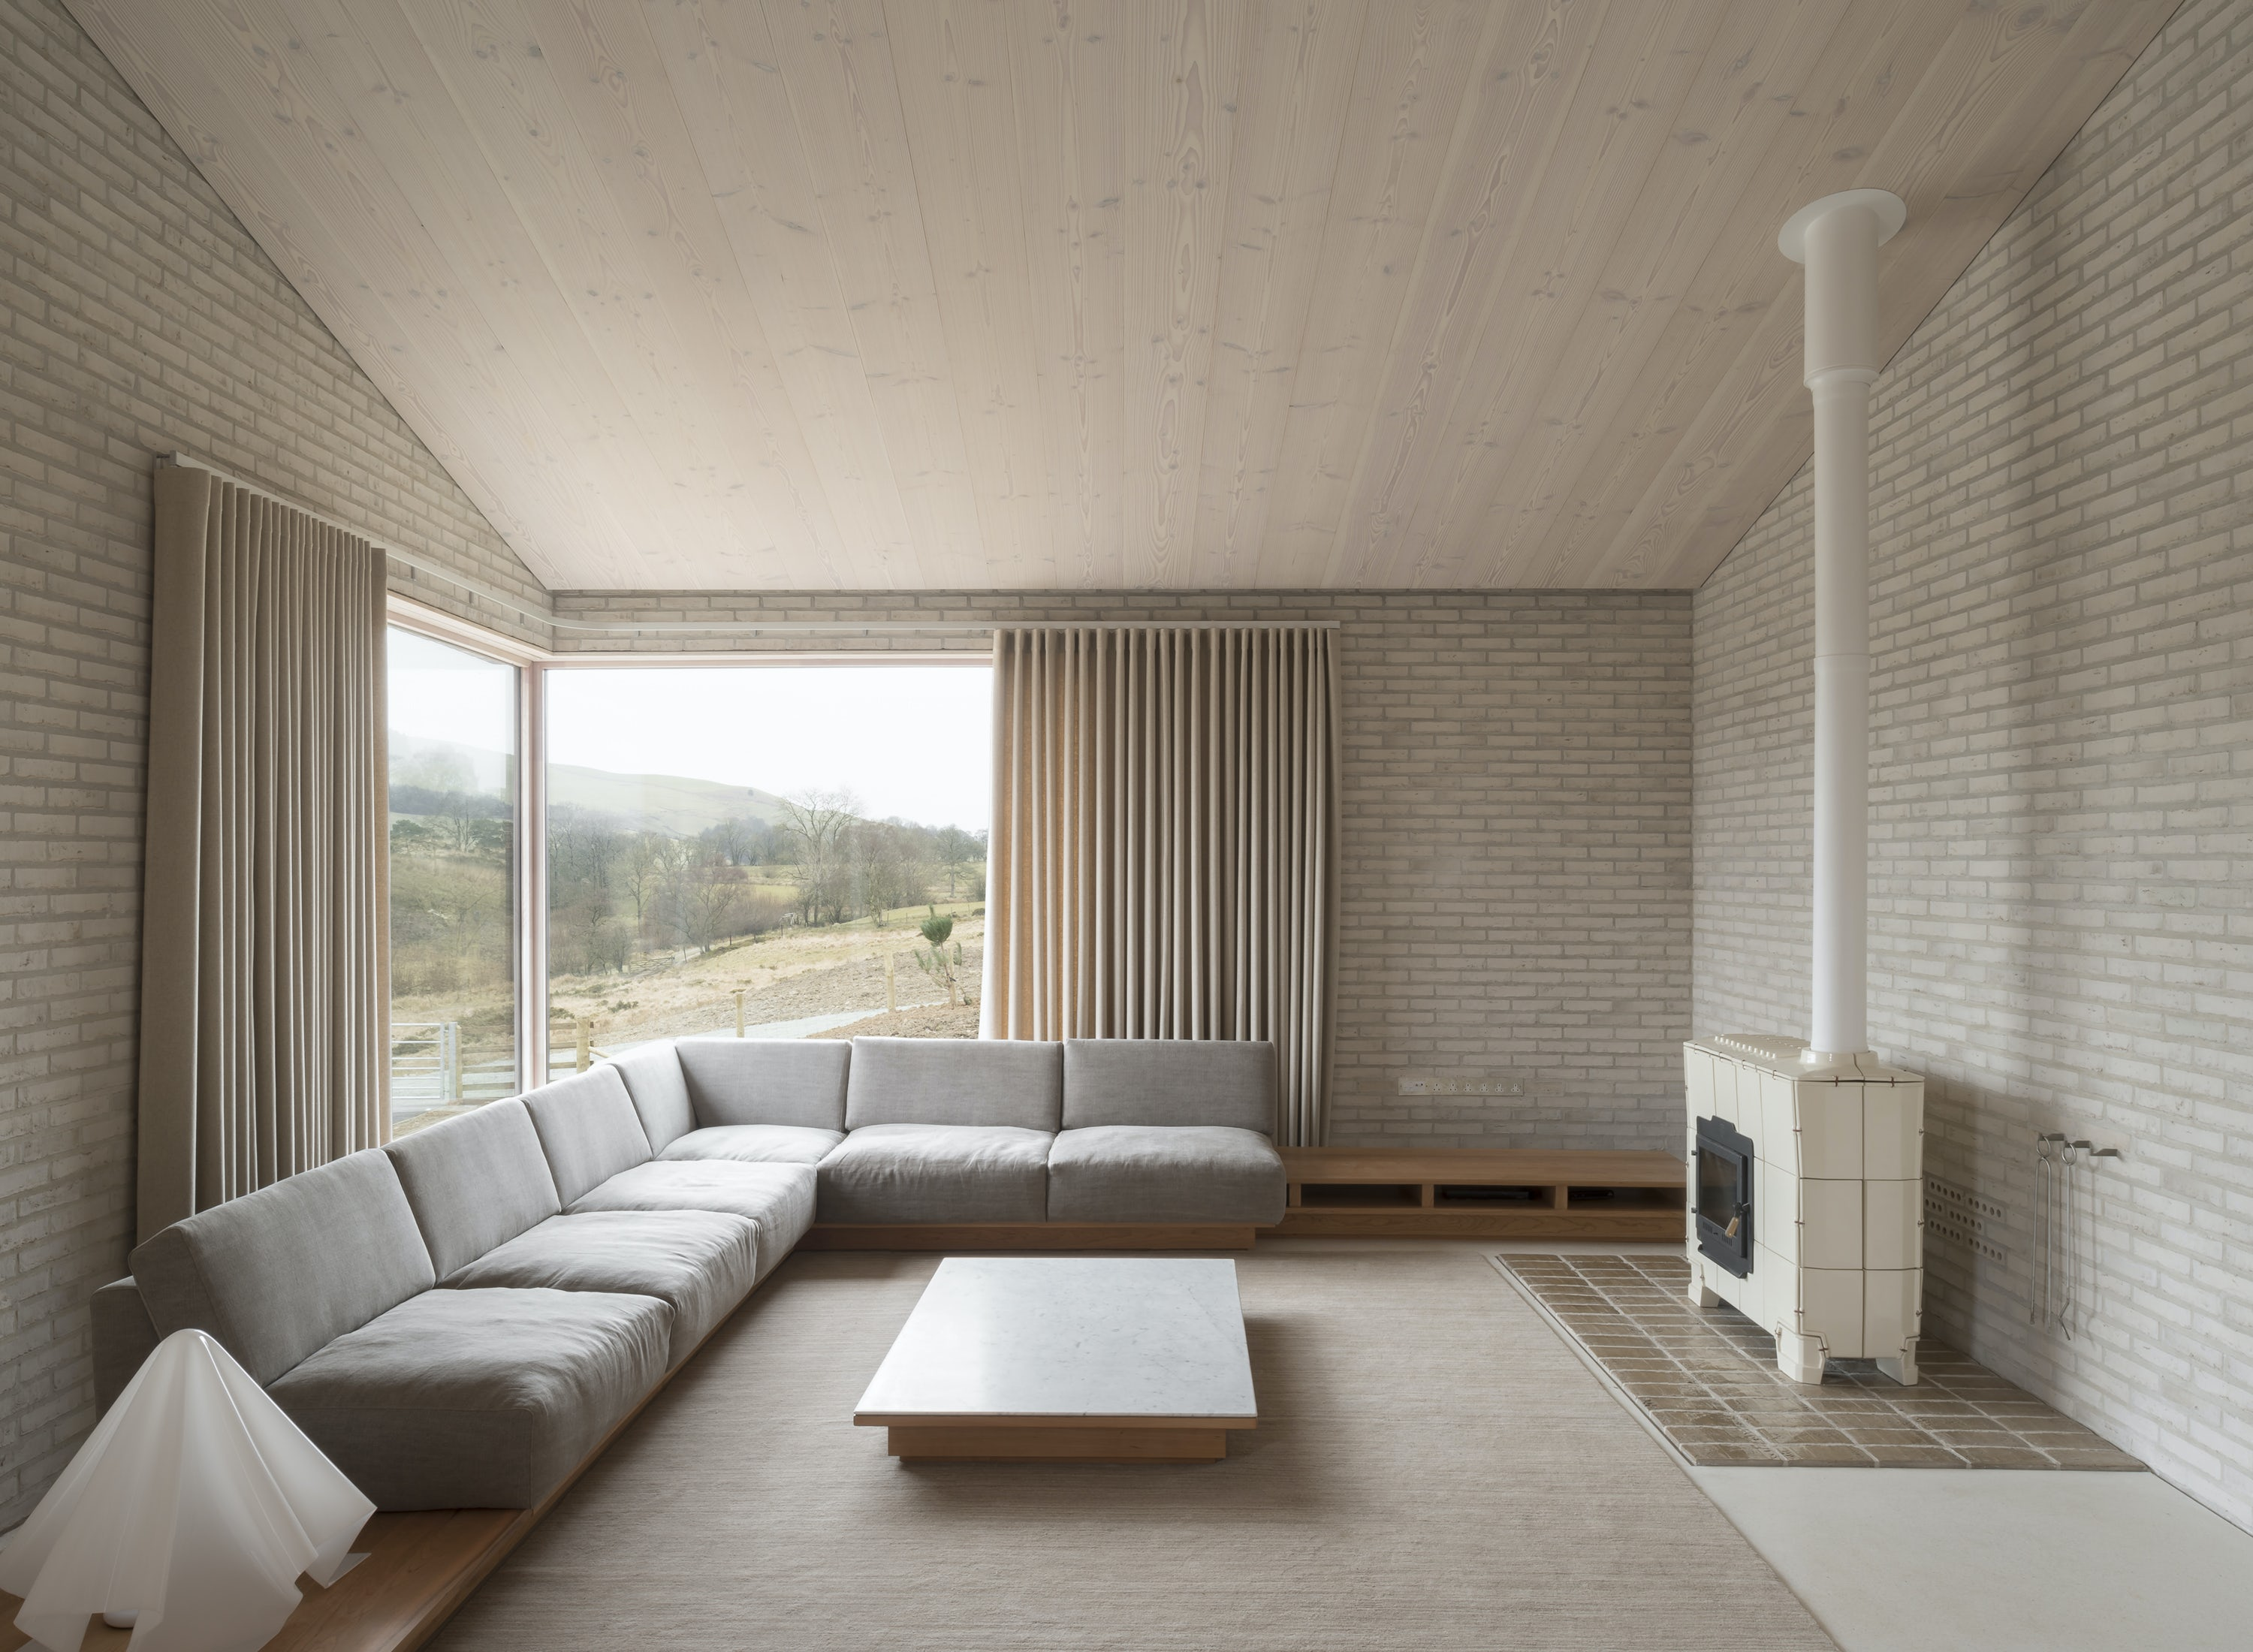 Minimalist Interiors nothingness: 10 perfect minimalist interiors - architizer